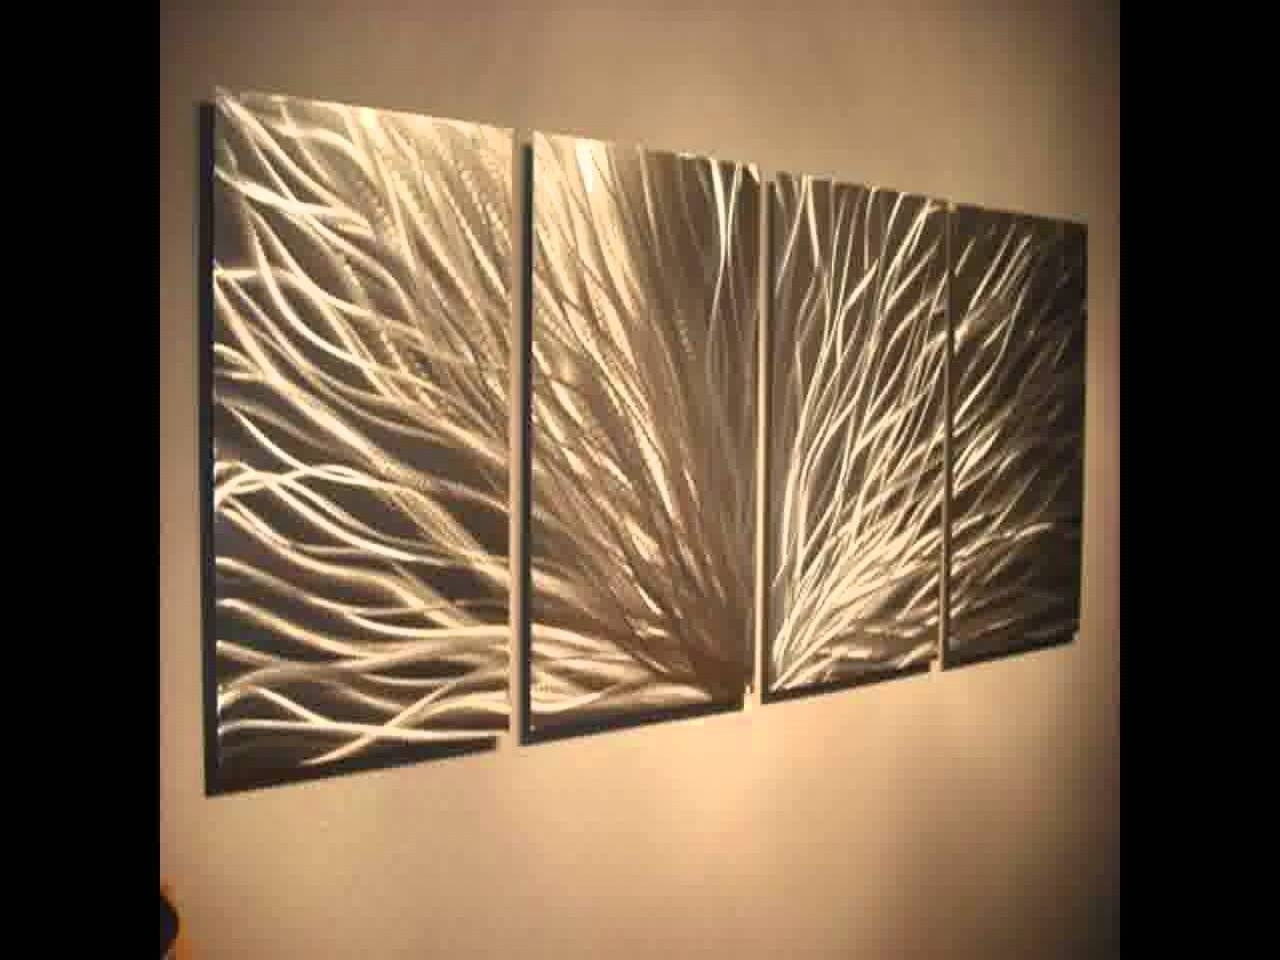 Wall Art For Men Design Ideas – Youtube Pertaining To Most Recently Released Wall Art For Men (View 11 of 15)